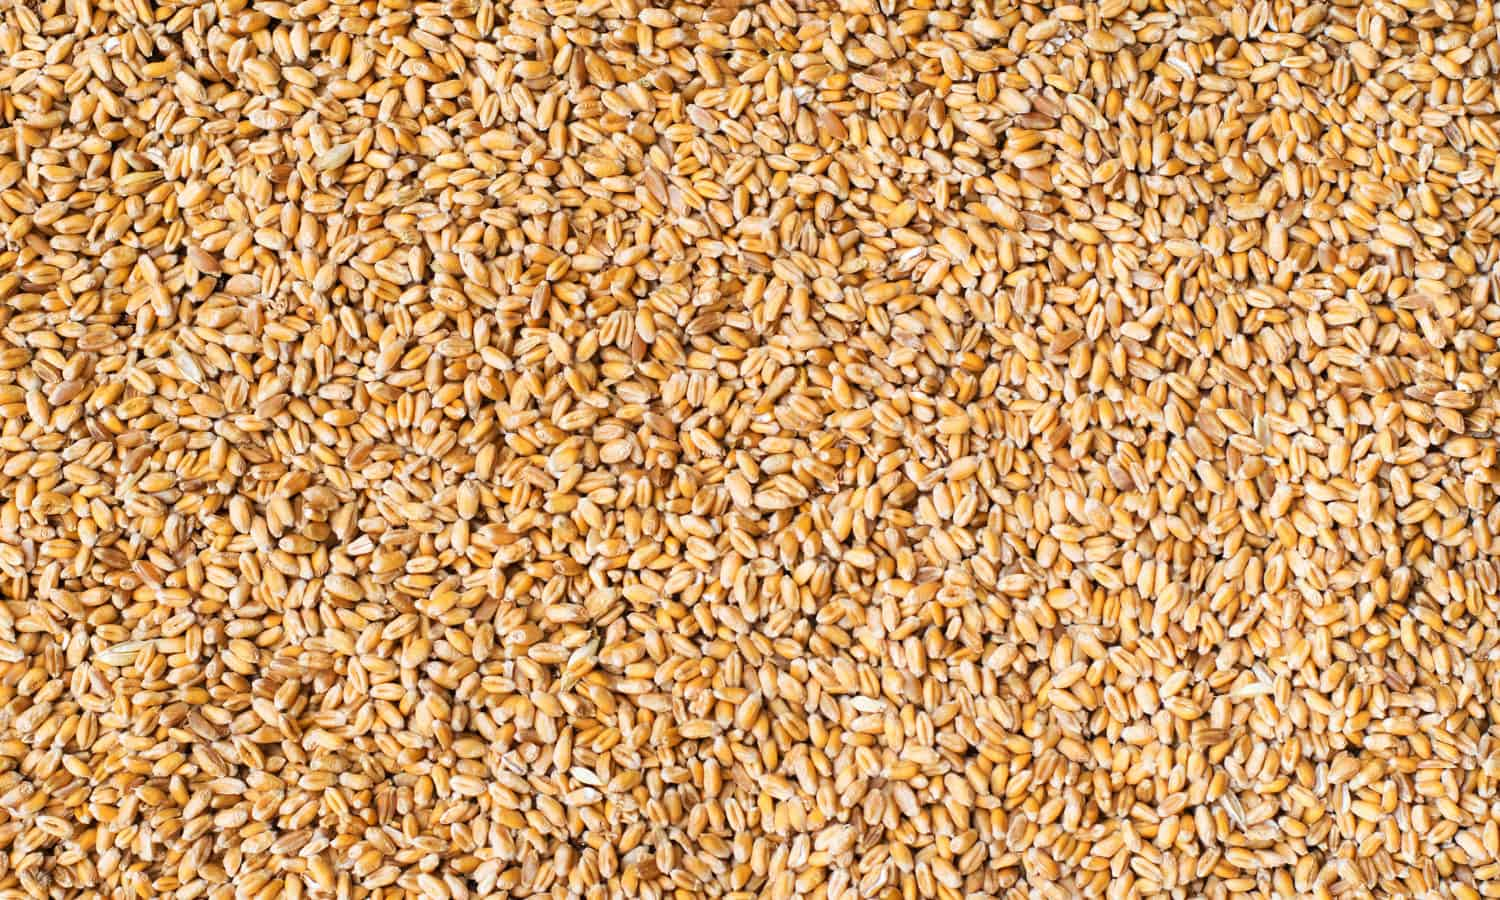 Amber Lambke, President of Maine Grains, Inc., discusses how the company is stimulating its local economy by looking to the past.